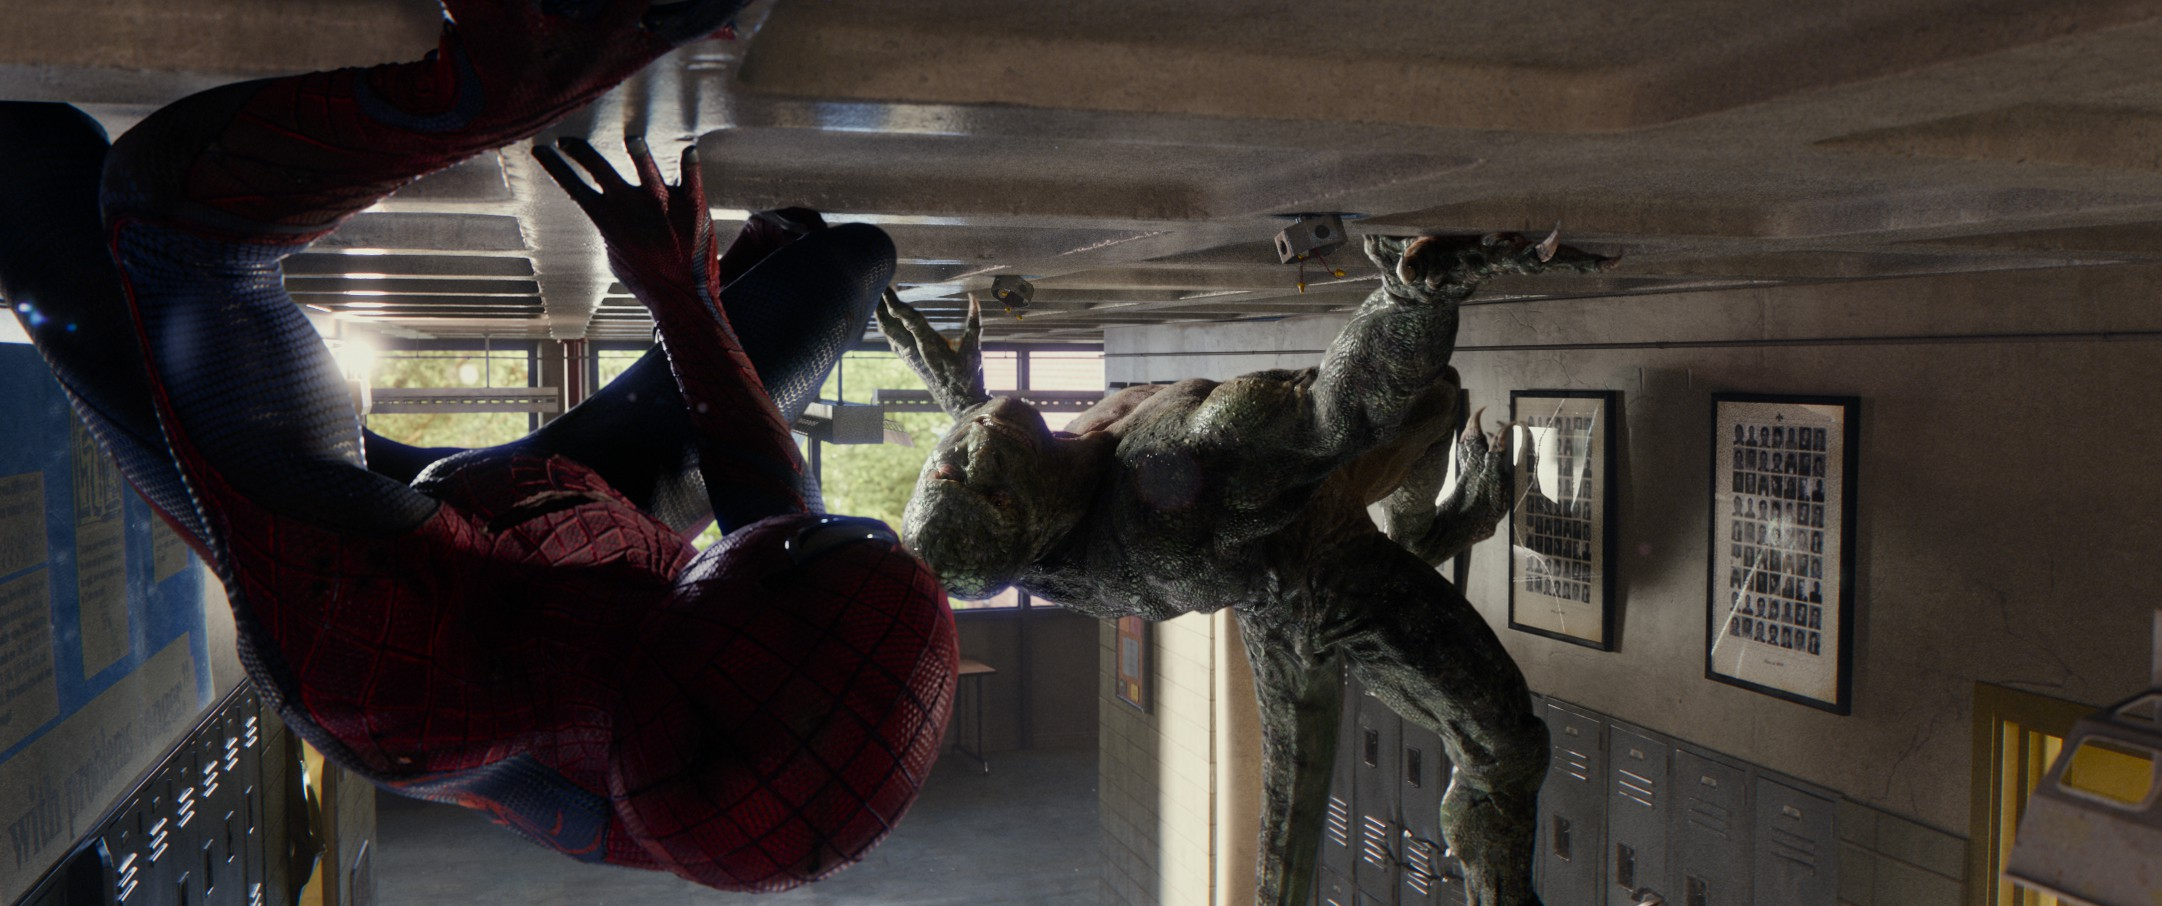 Spider-Man vs. Lizard - HeyUGuys